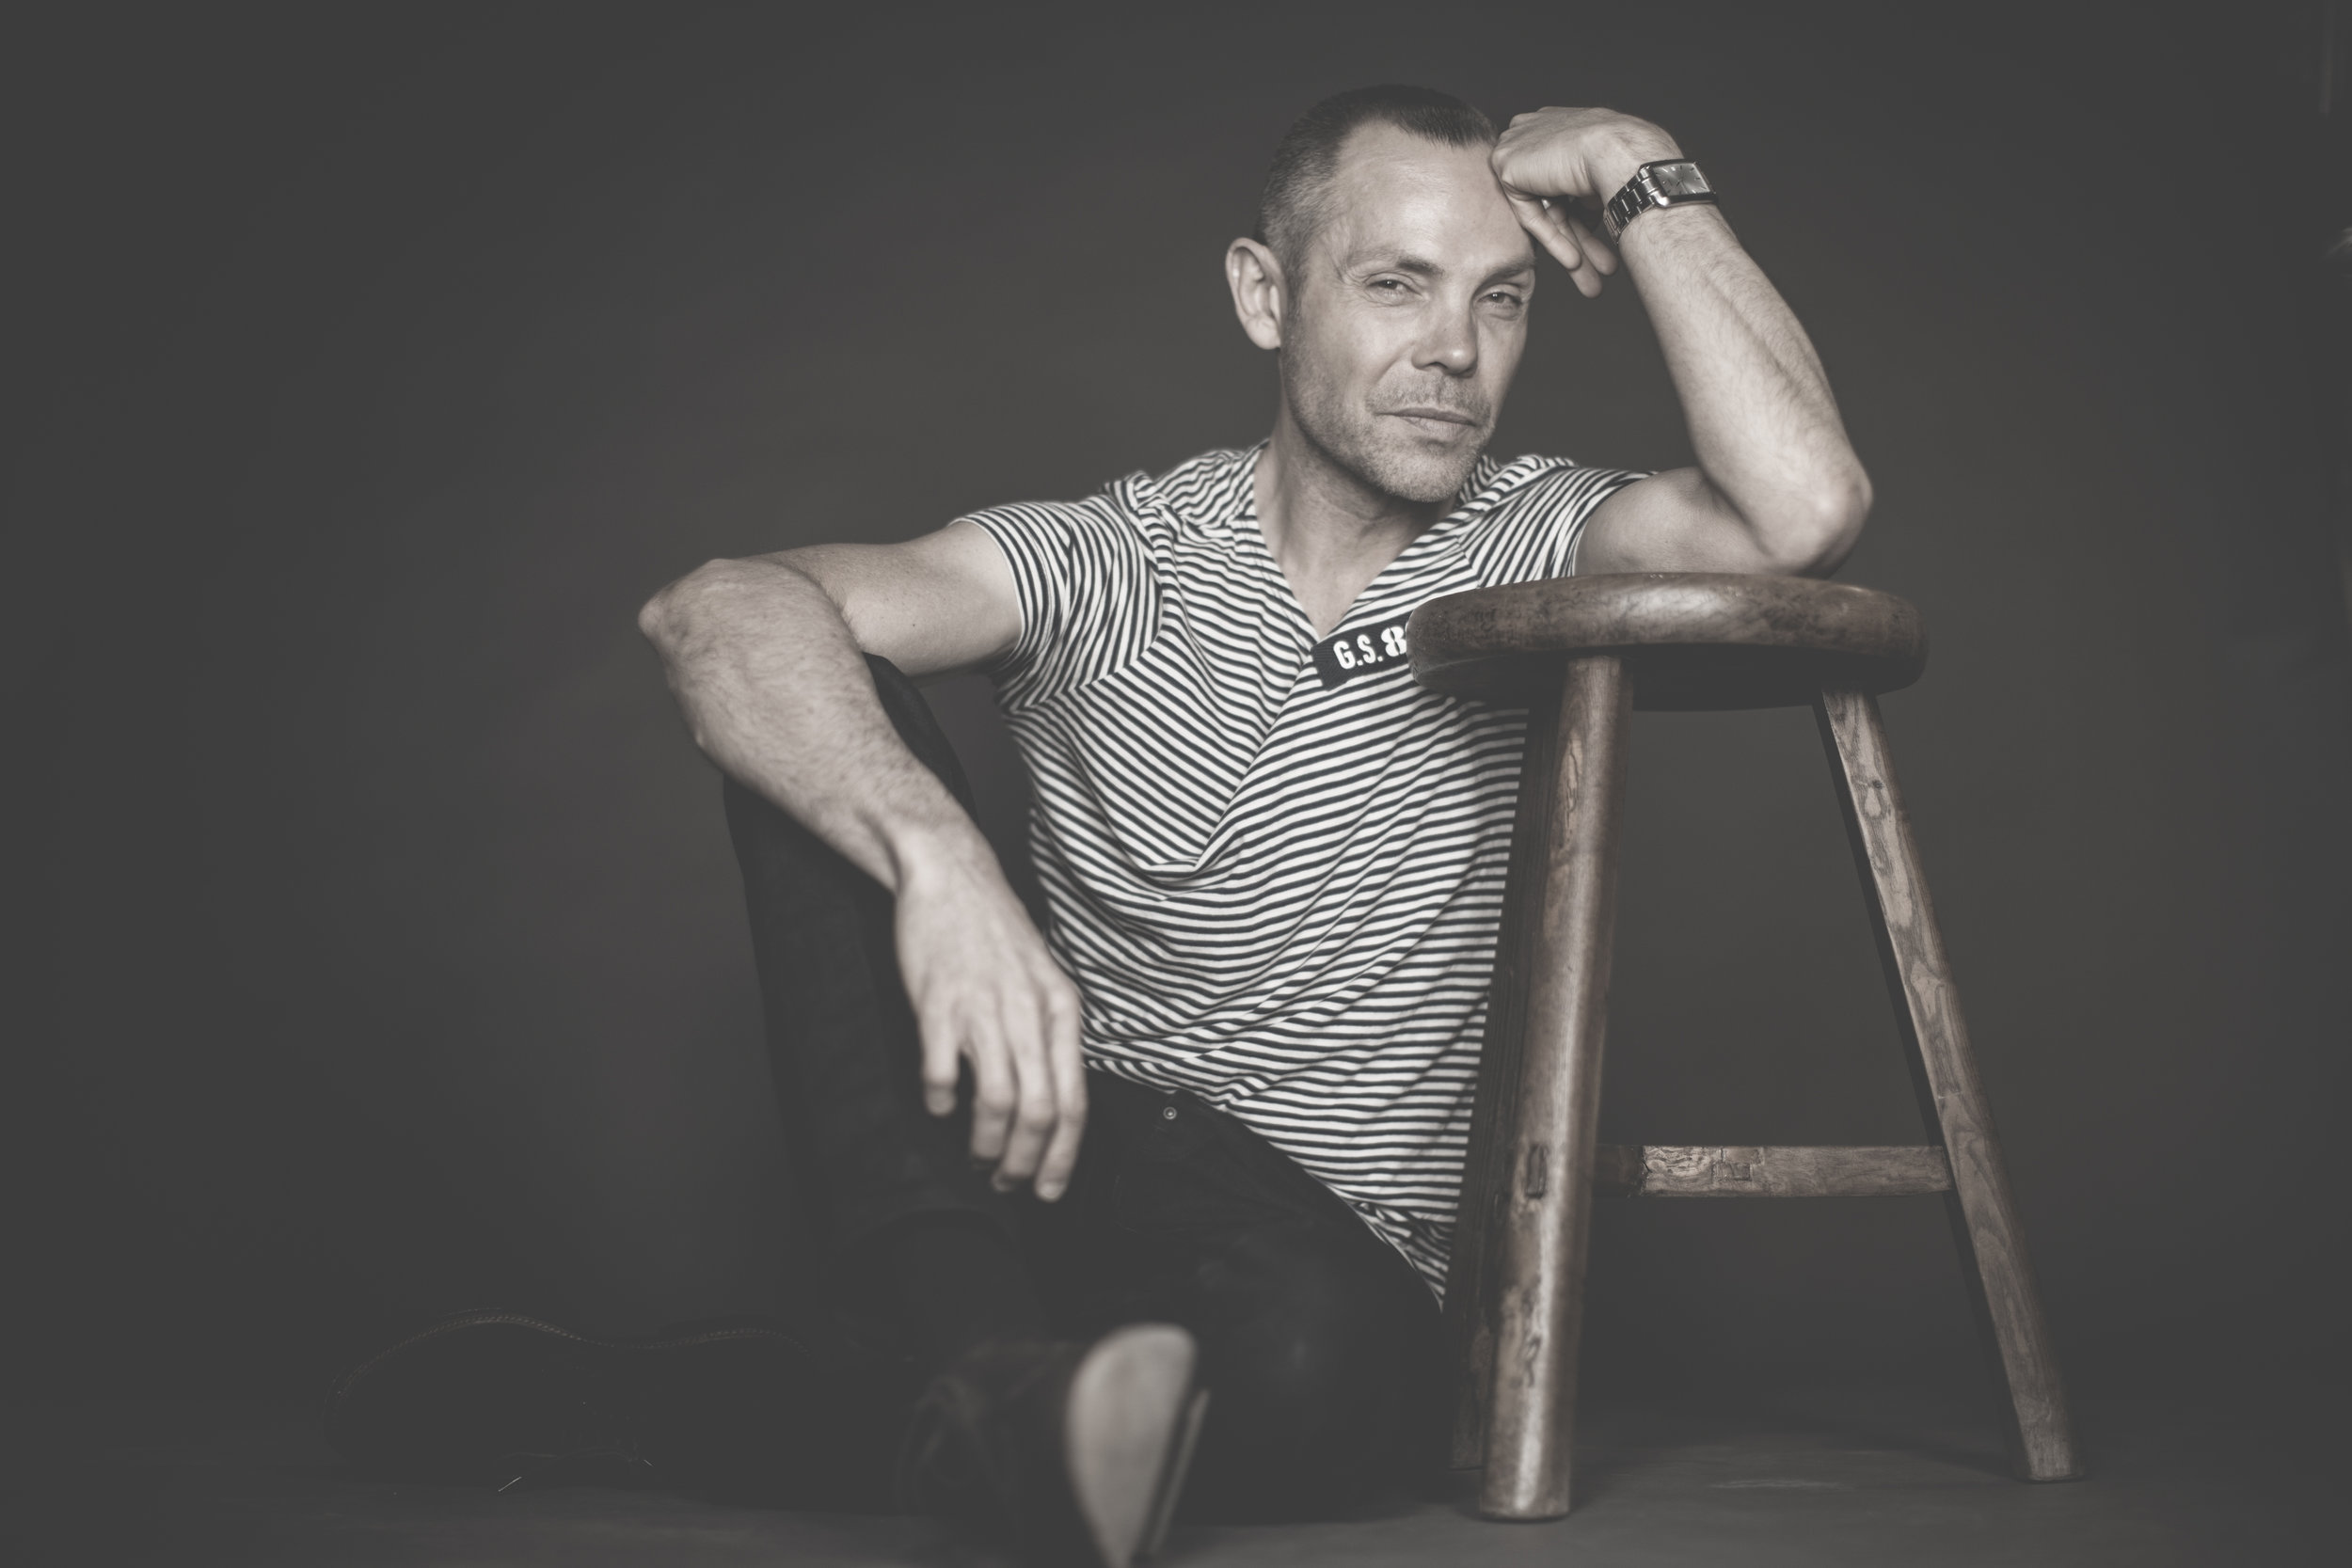 Bison Homes design business owner Brian Tunks poses for a portrait with a wooden stool white strip tshirt relaxed portrait in studio